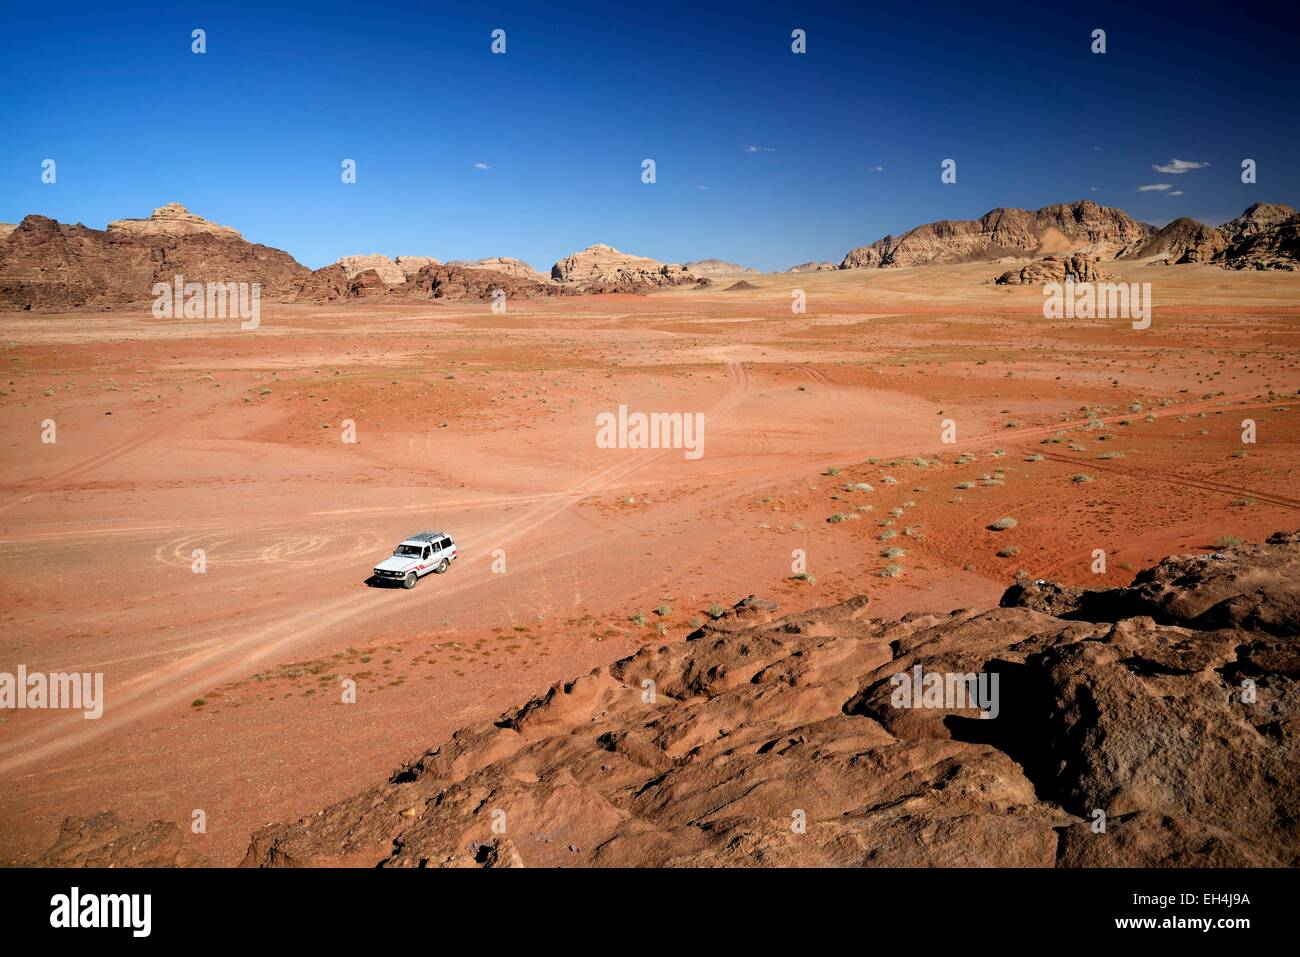 Jordan, Wadi Rum desert, protected area listed as World Heritage by UNESCO, car, red sand desert and rocks - Stock Image